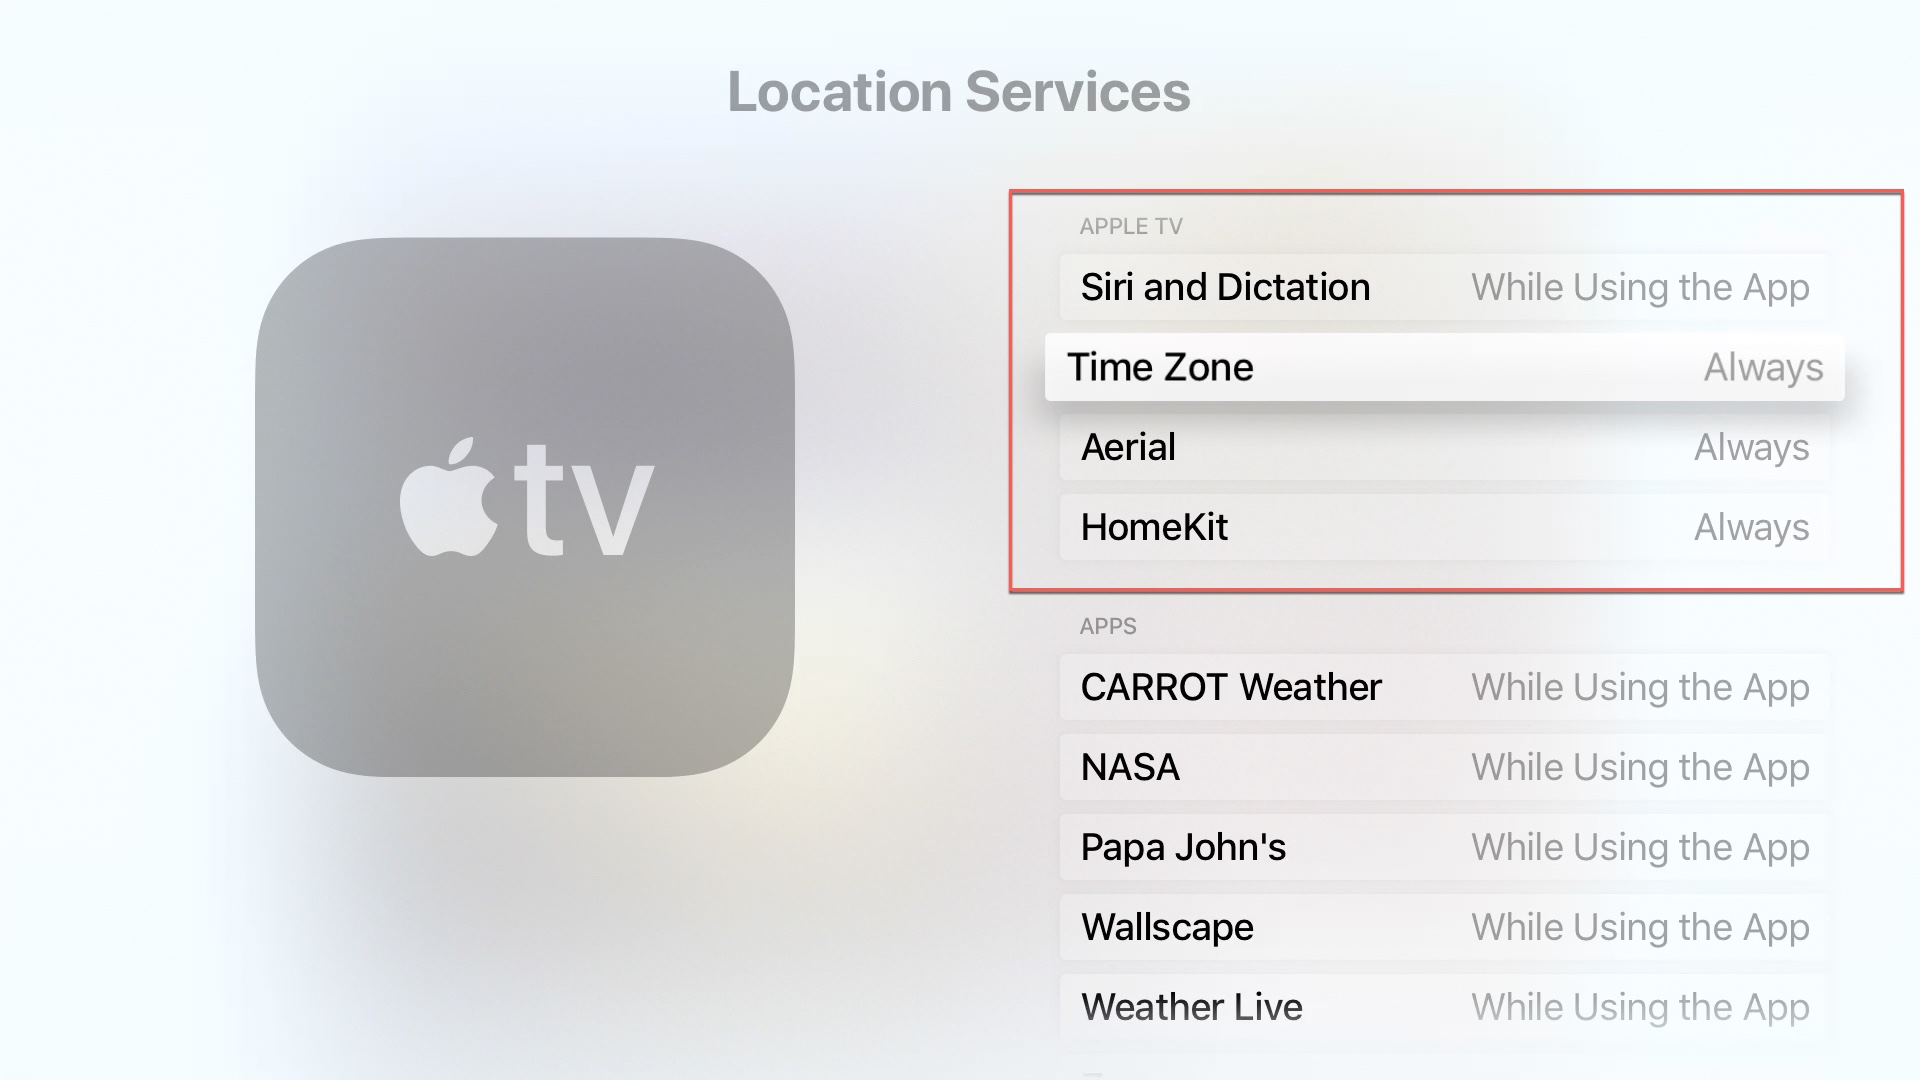 Apple TV Location Services Apple TV Options